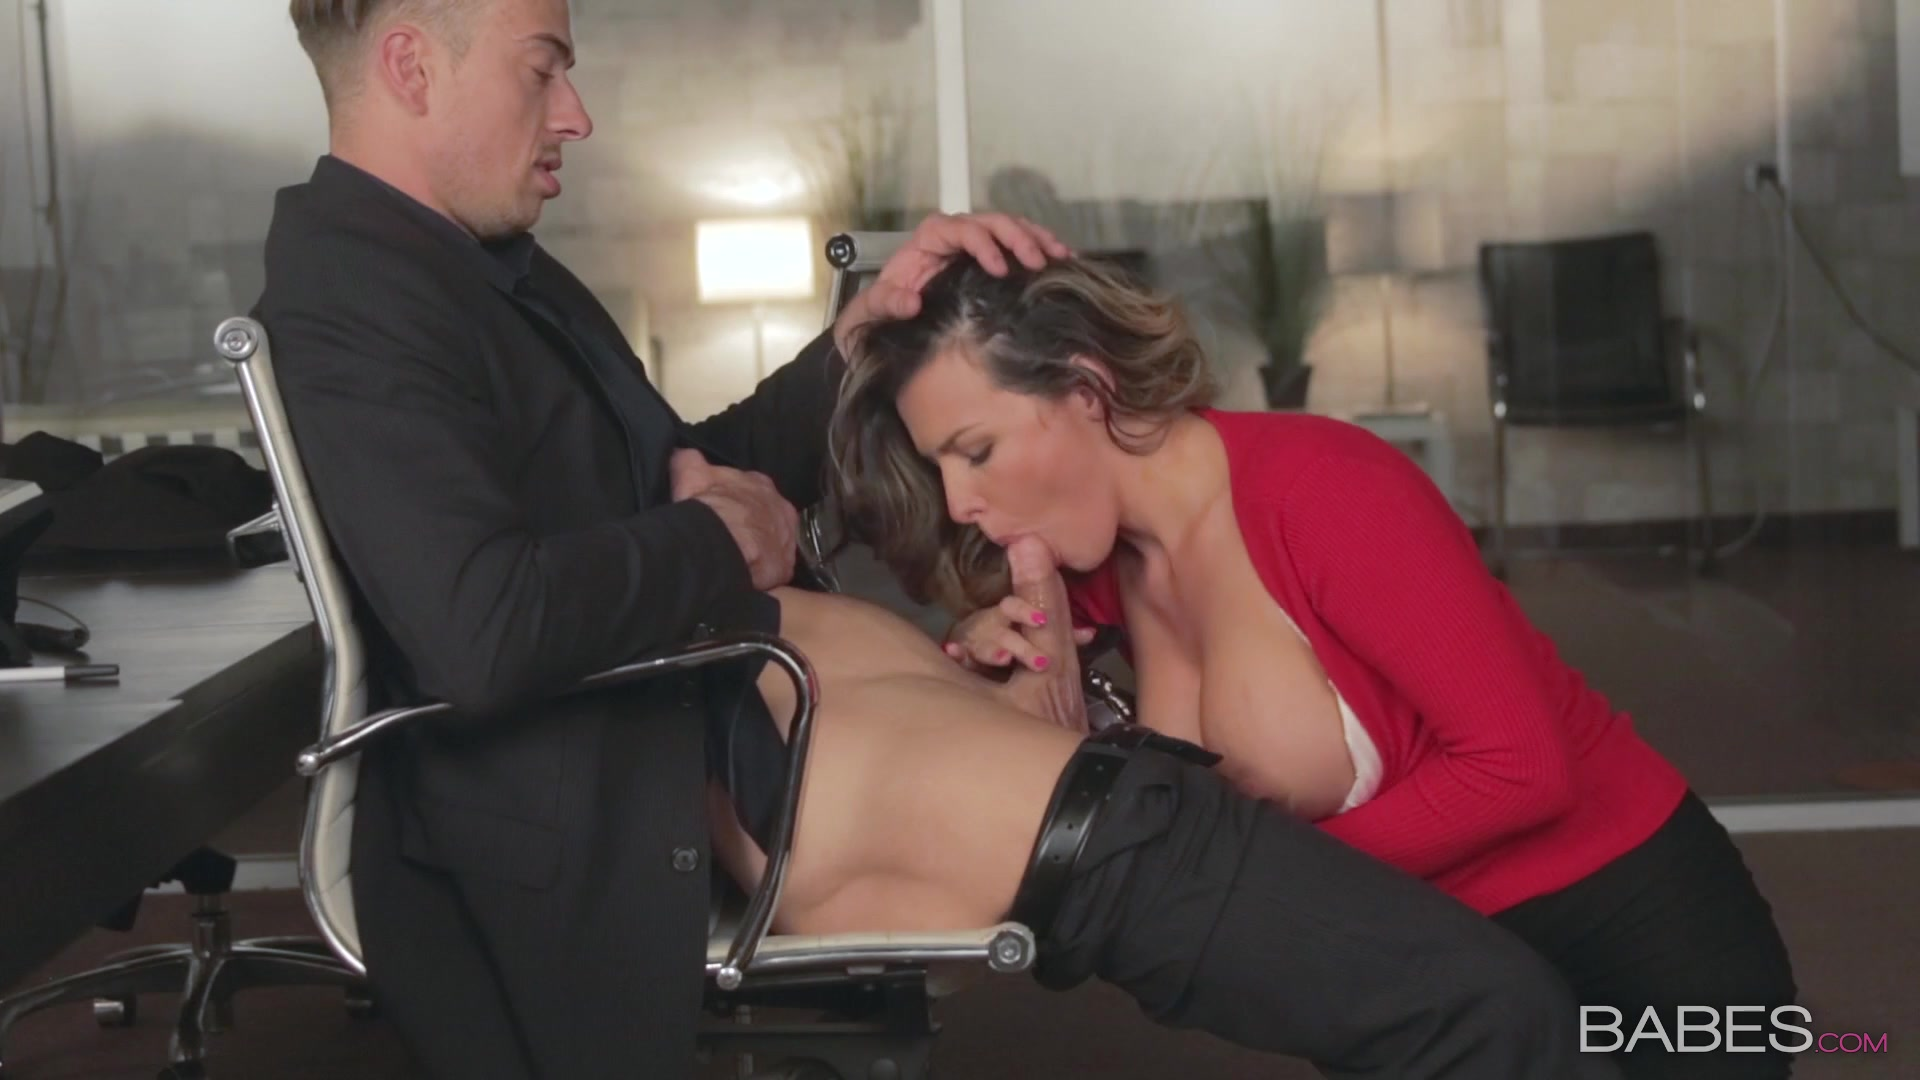 Free sex clips and movies-6194